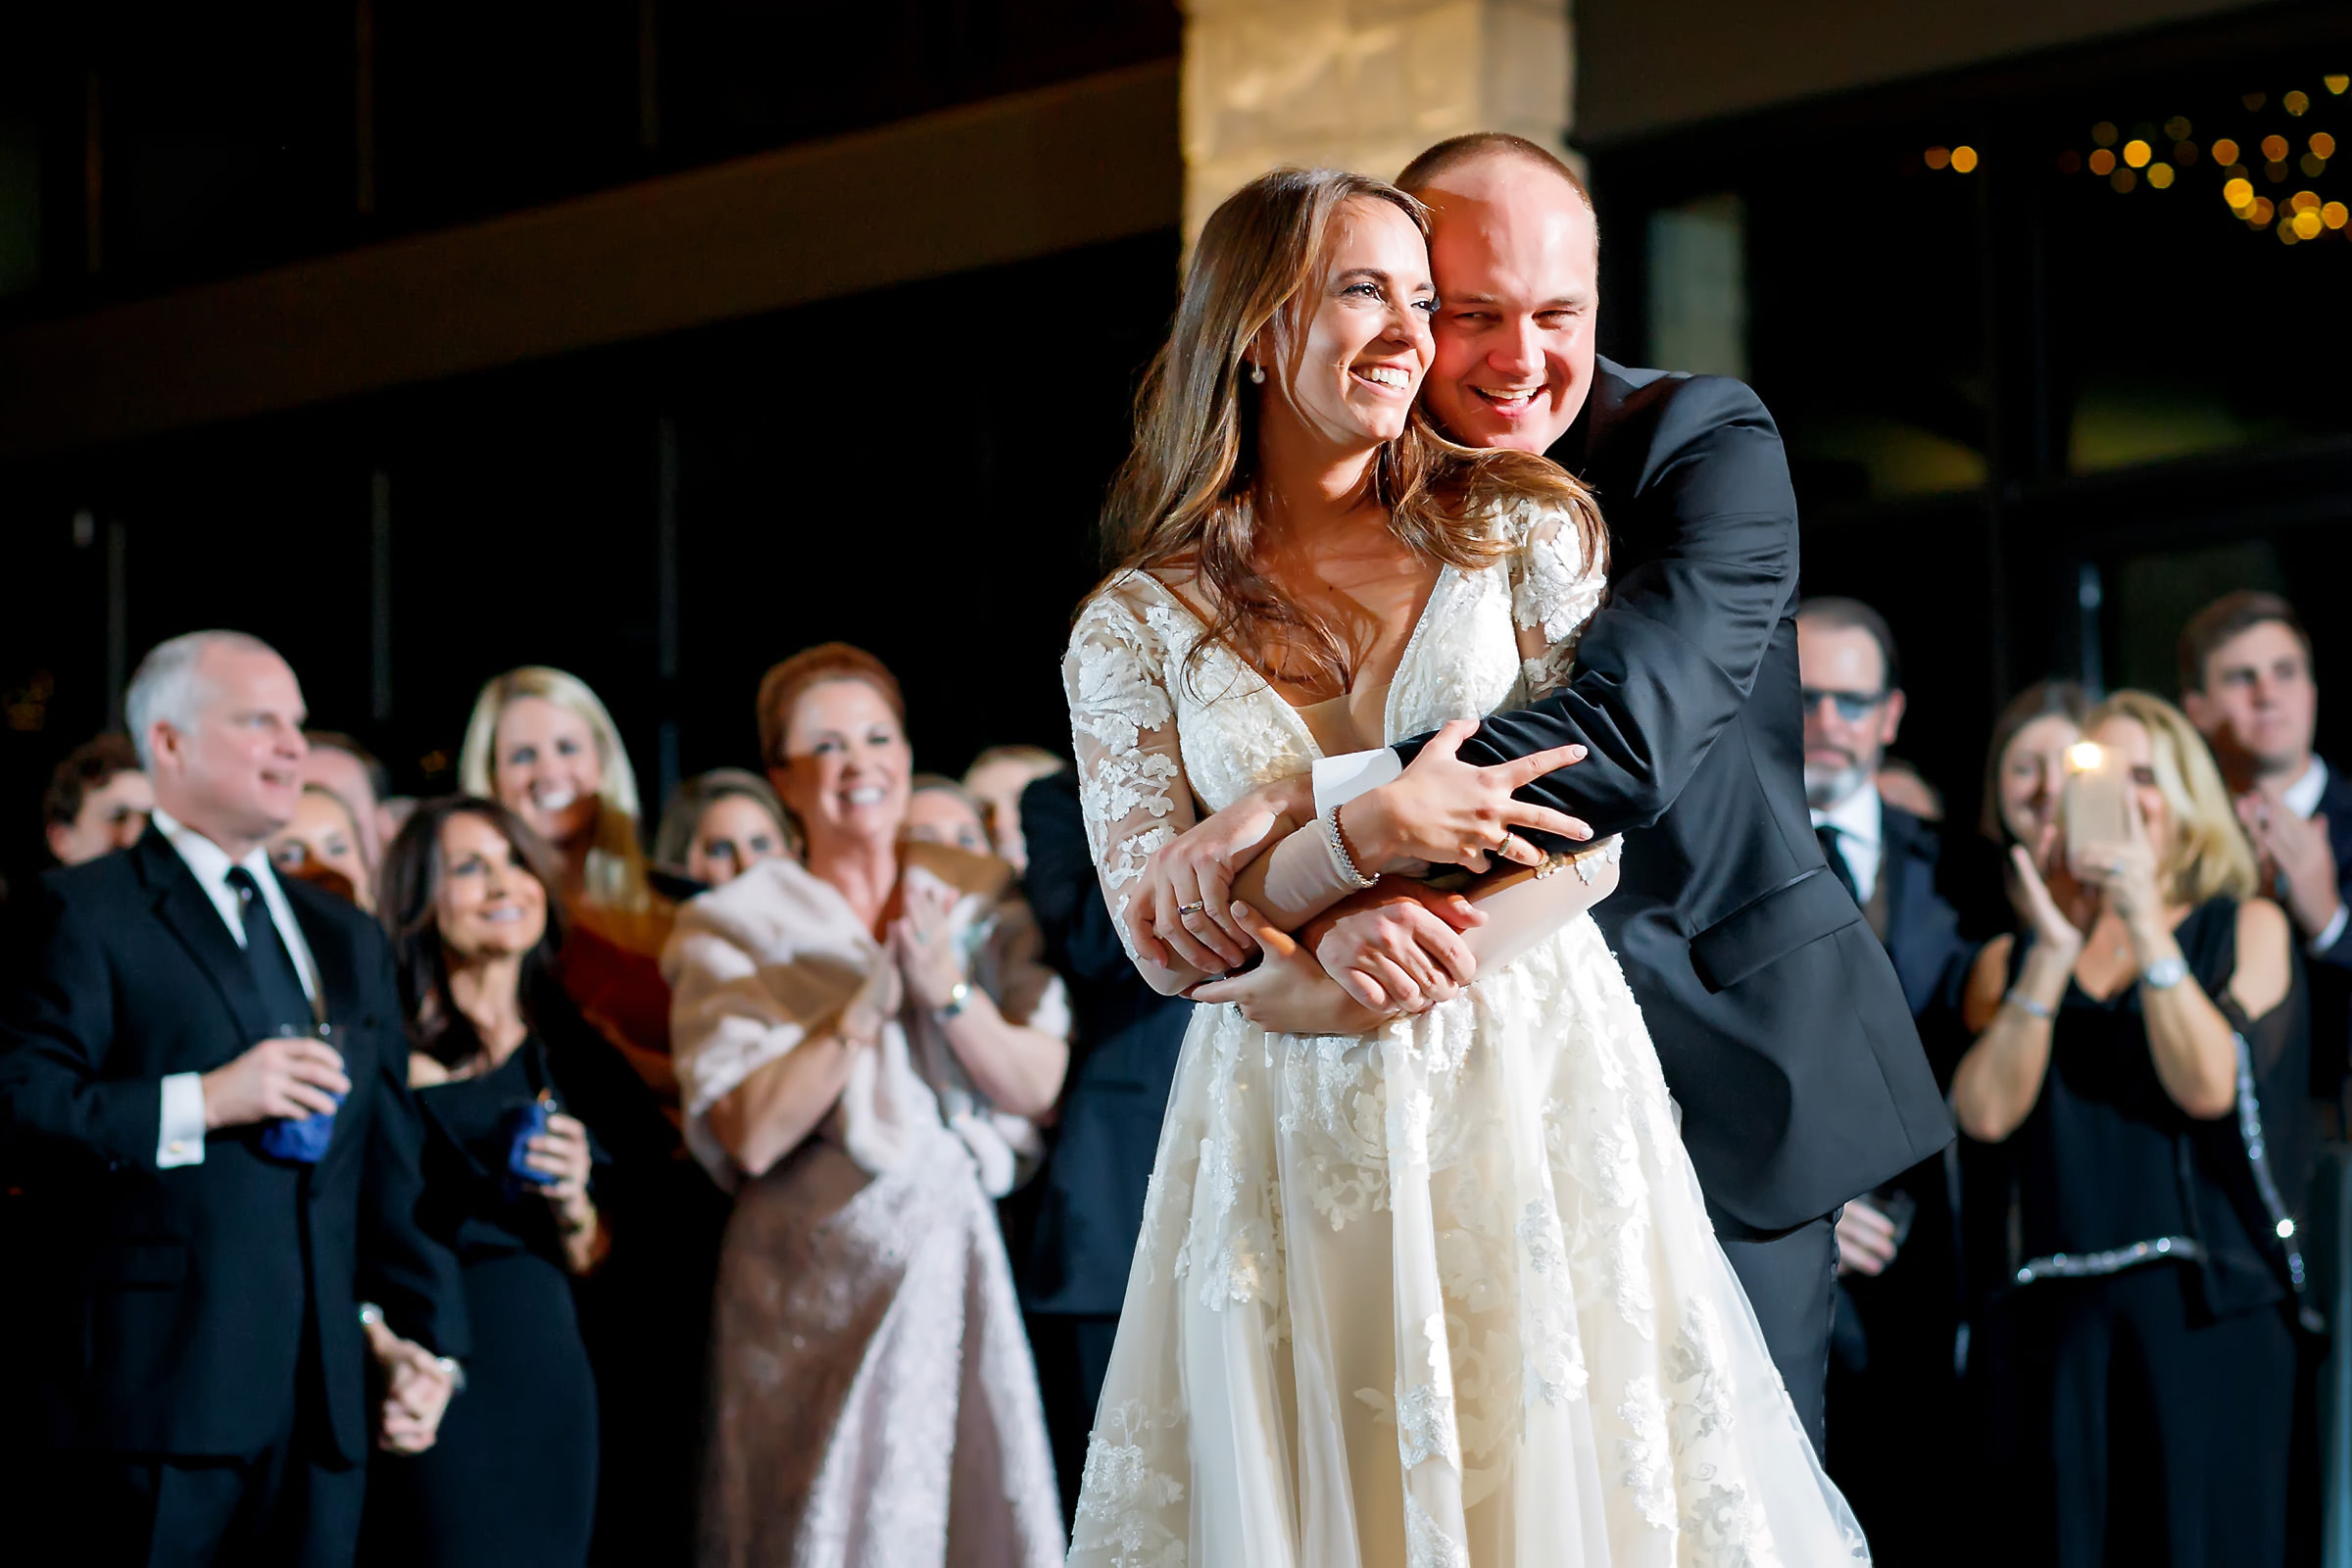 Couple embrace at reception - photo by Jenny DeMarco Photography